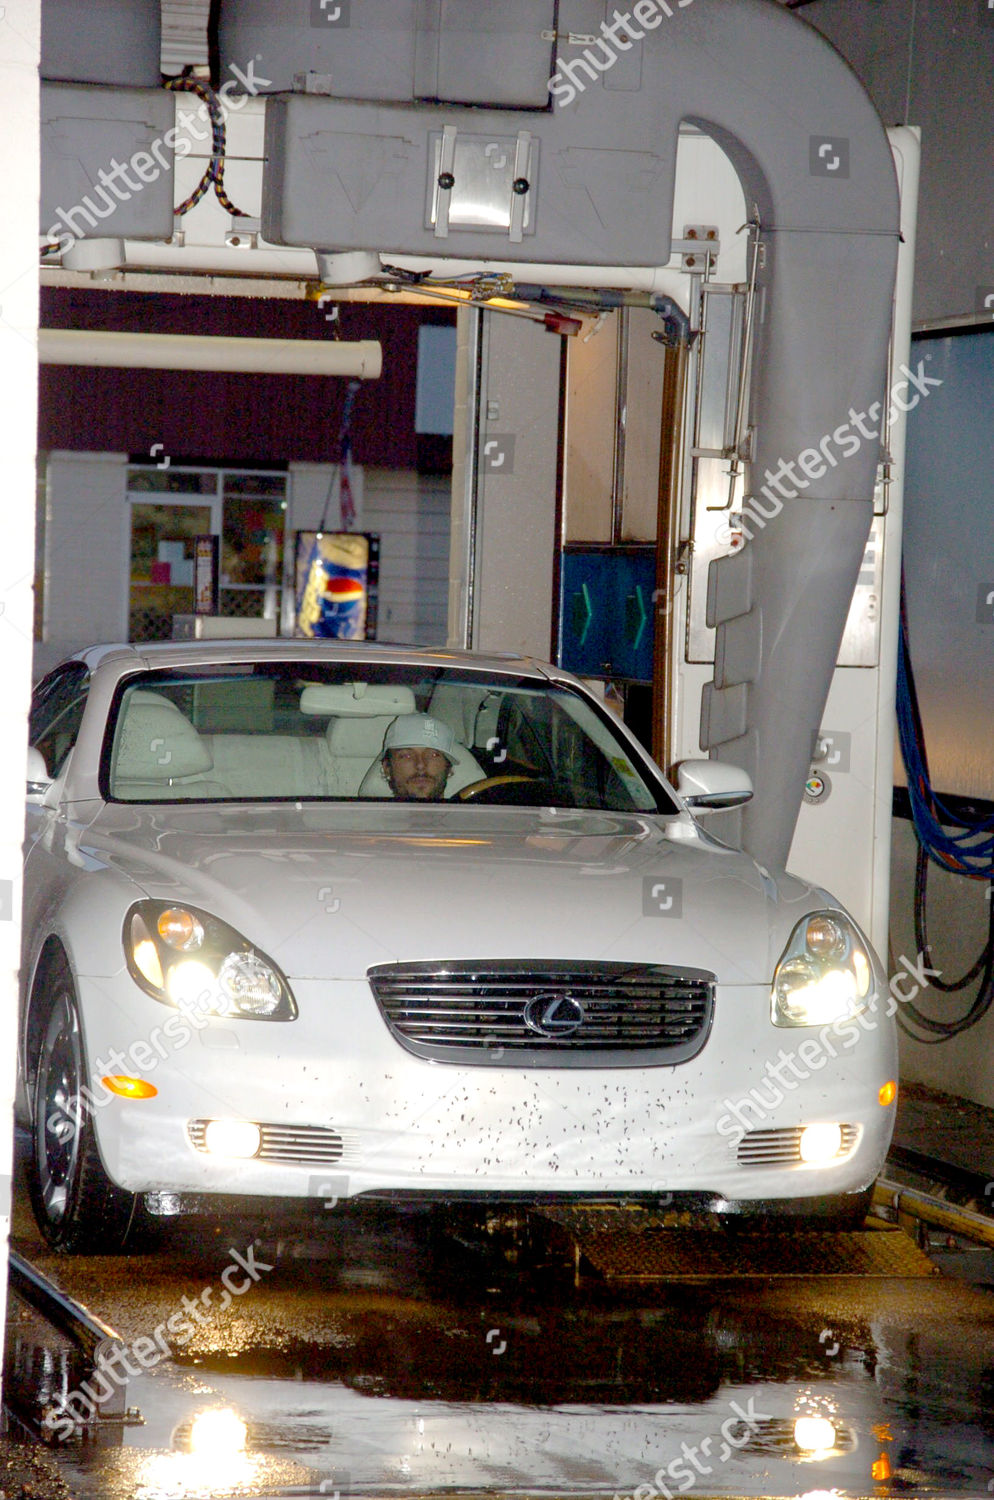 Kevin Federline Carwash Editorial Stock Photo Image Lexus Car Wash Taking The Convertible Sports Of His Wife Britney Spears To